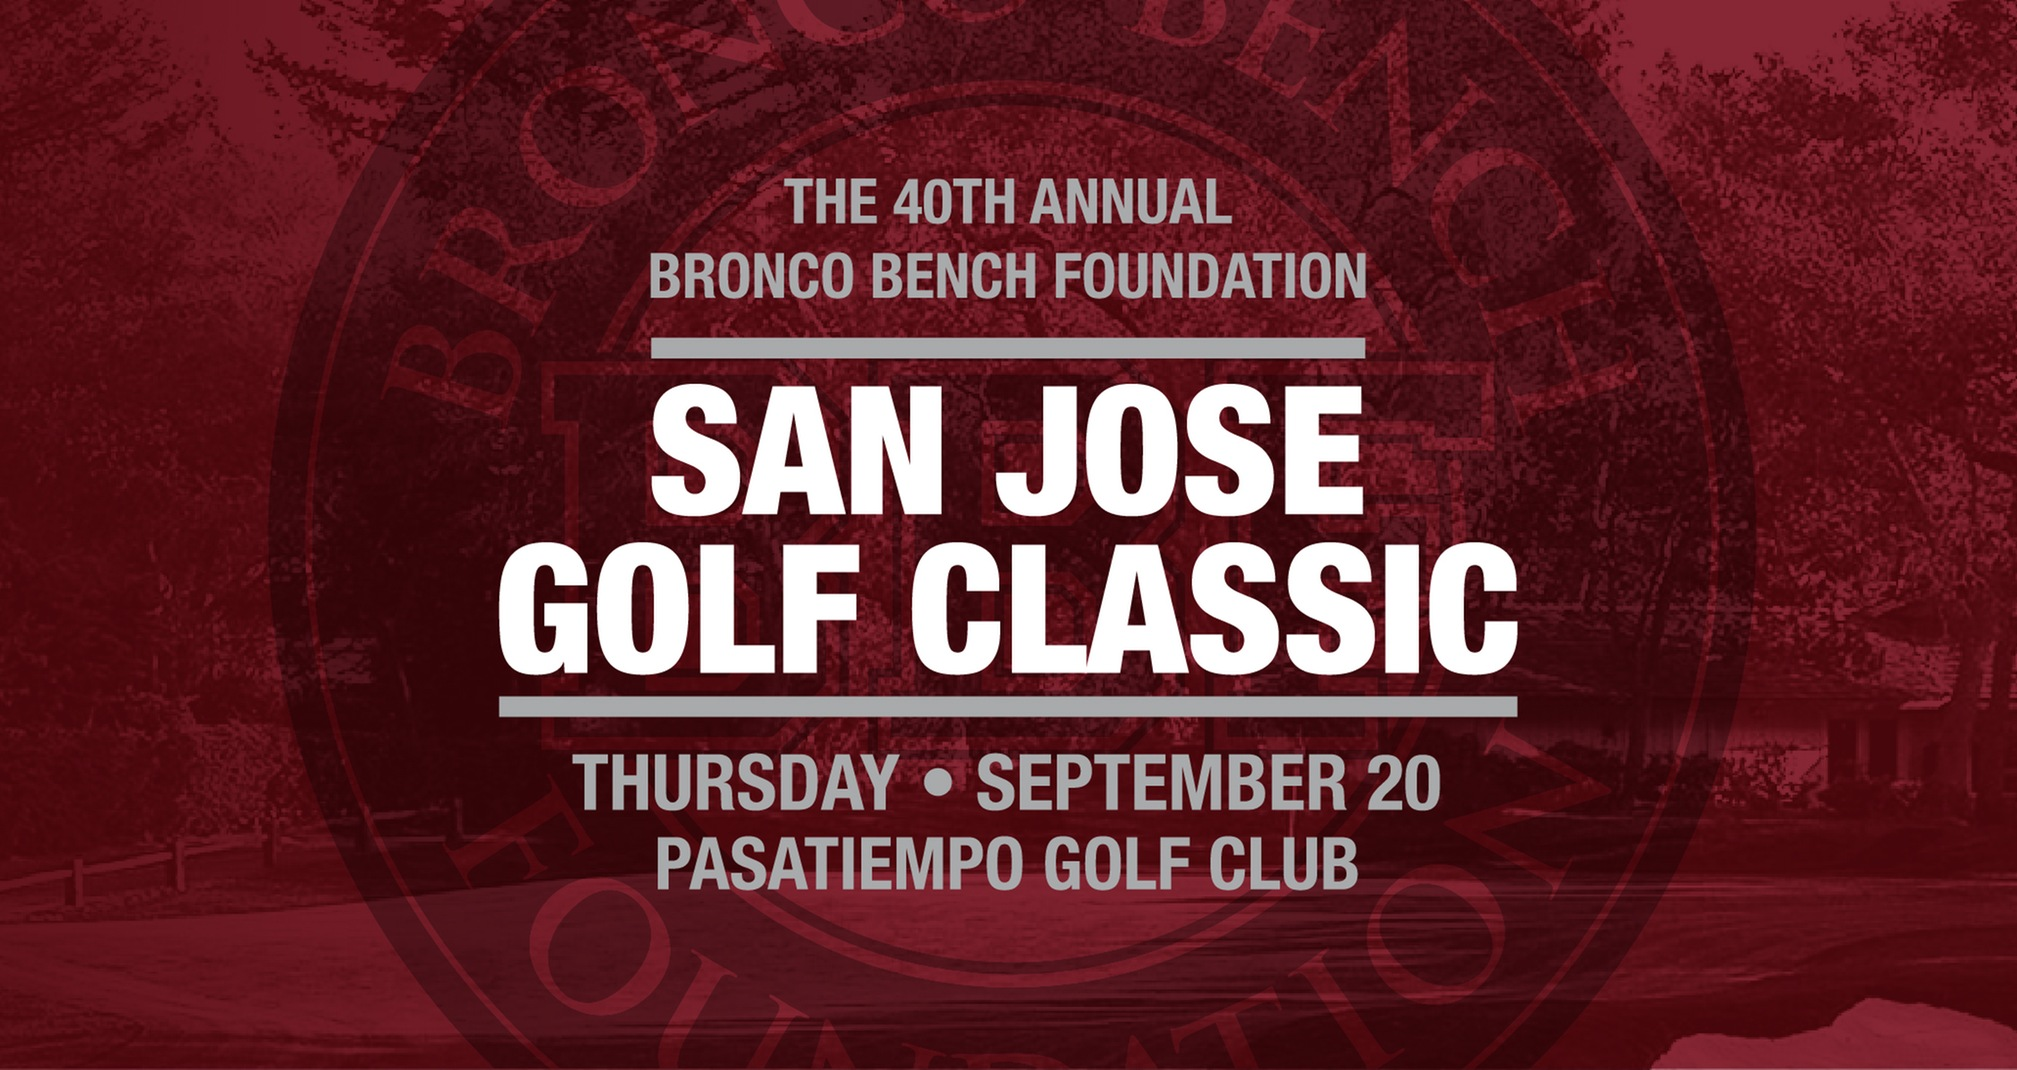 Santa Clara Athletics To Host 40th Annual San Jose Golf Classic, Presented by Heritage Bank and Silicon Valley Mechanical